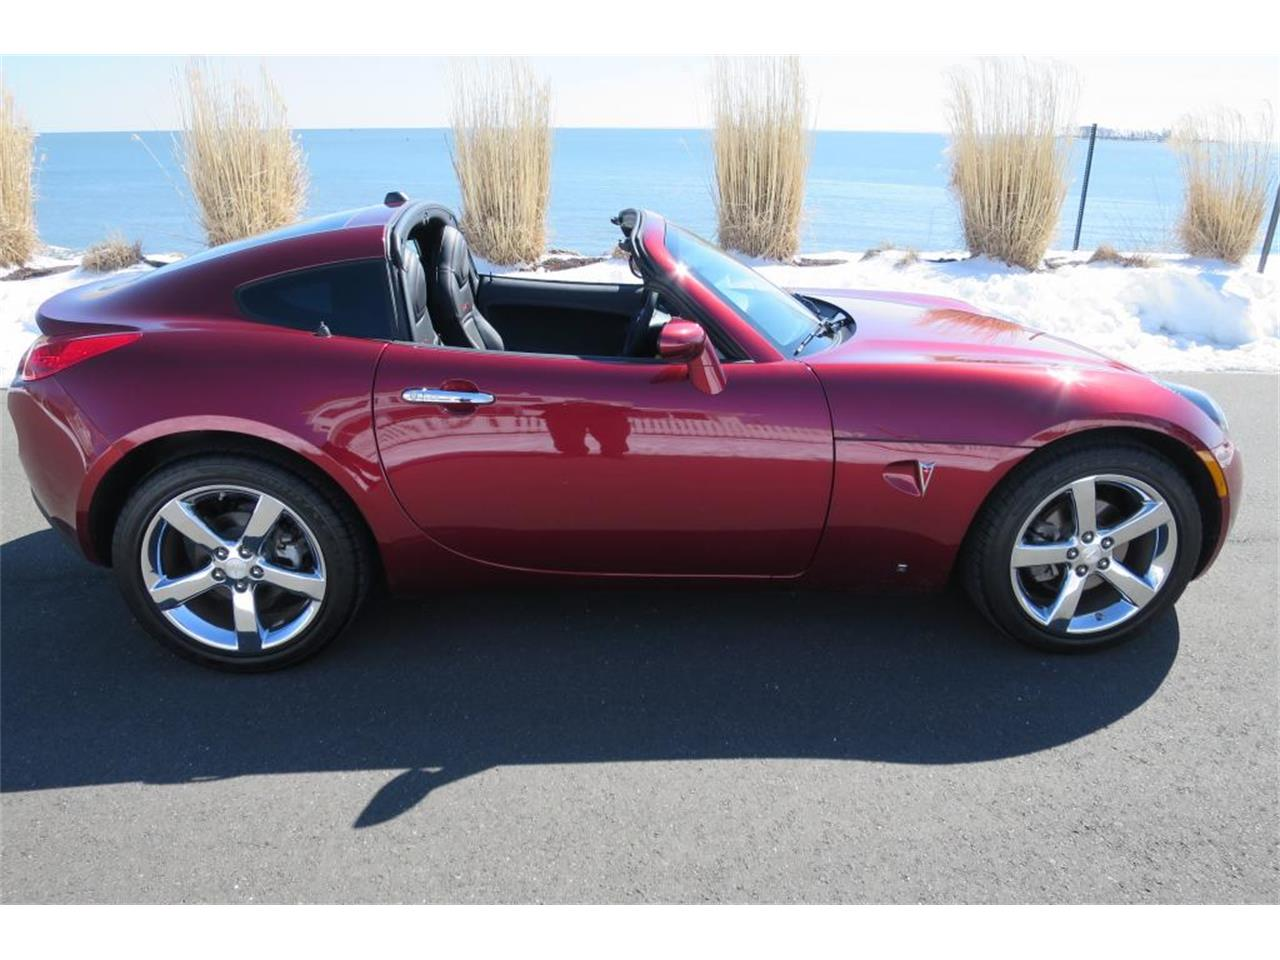 2009 Pontiac Solstice (CC-1152016) for sale in Milford City, Connecticut